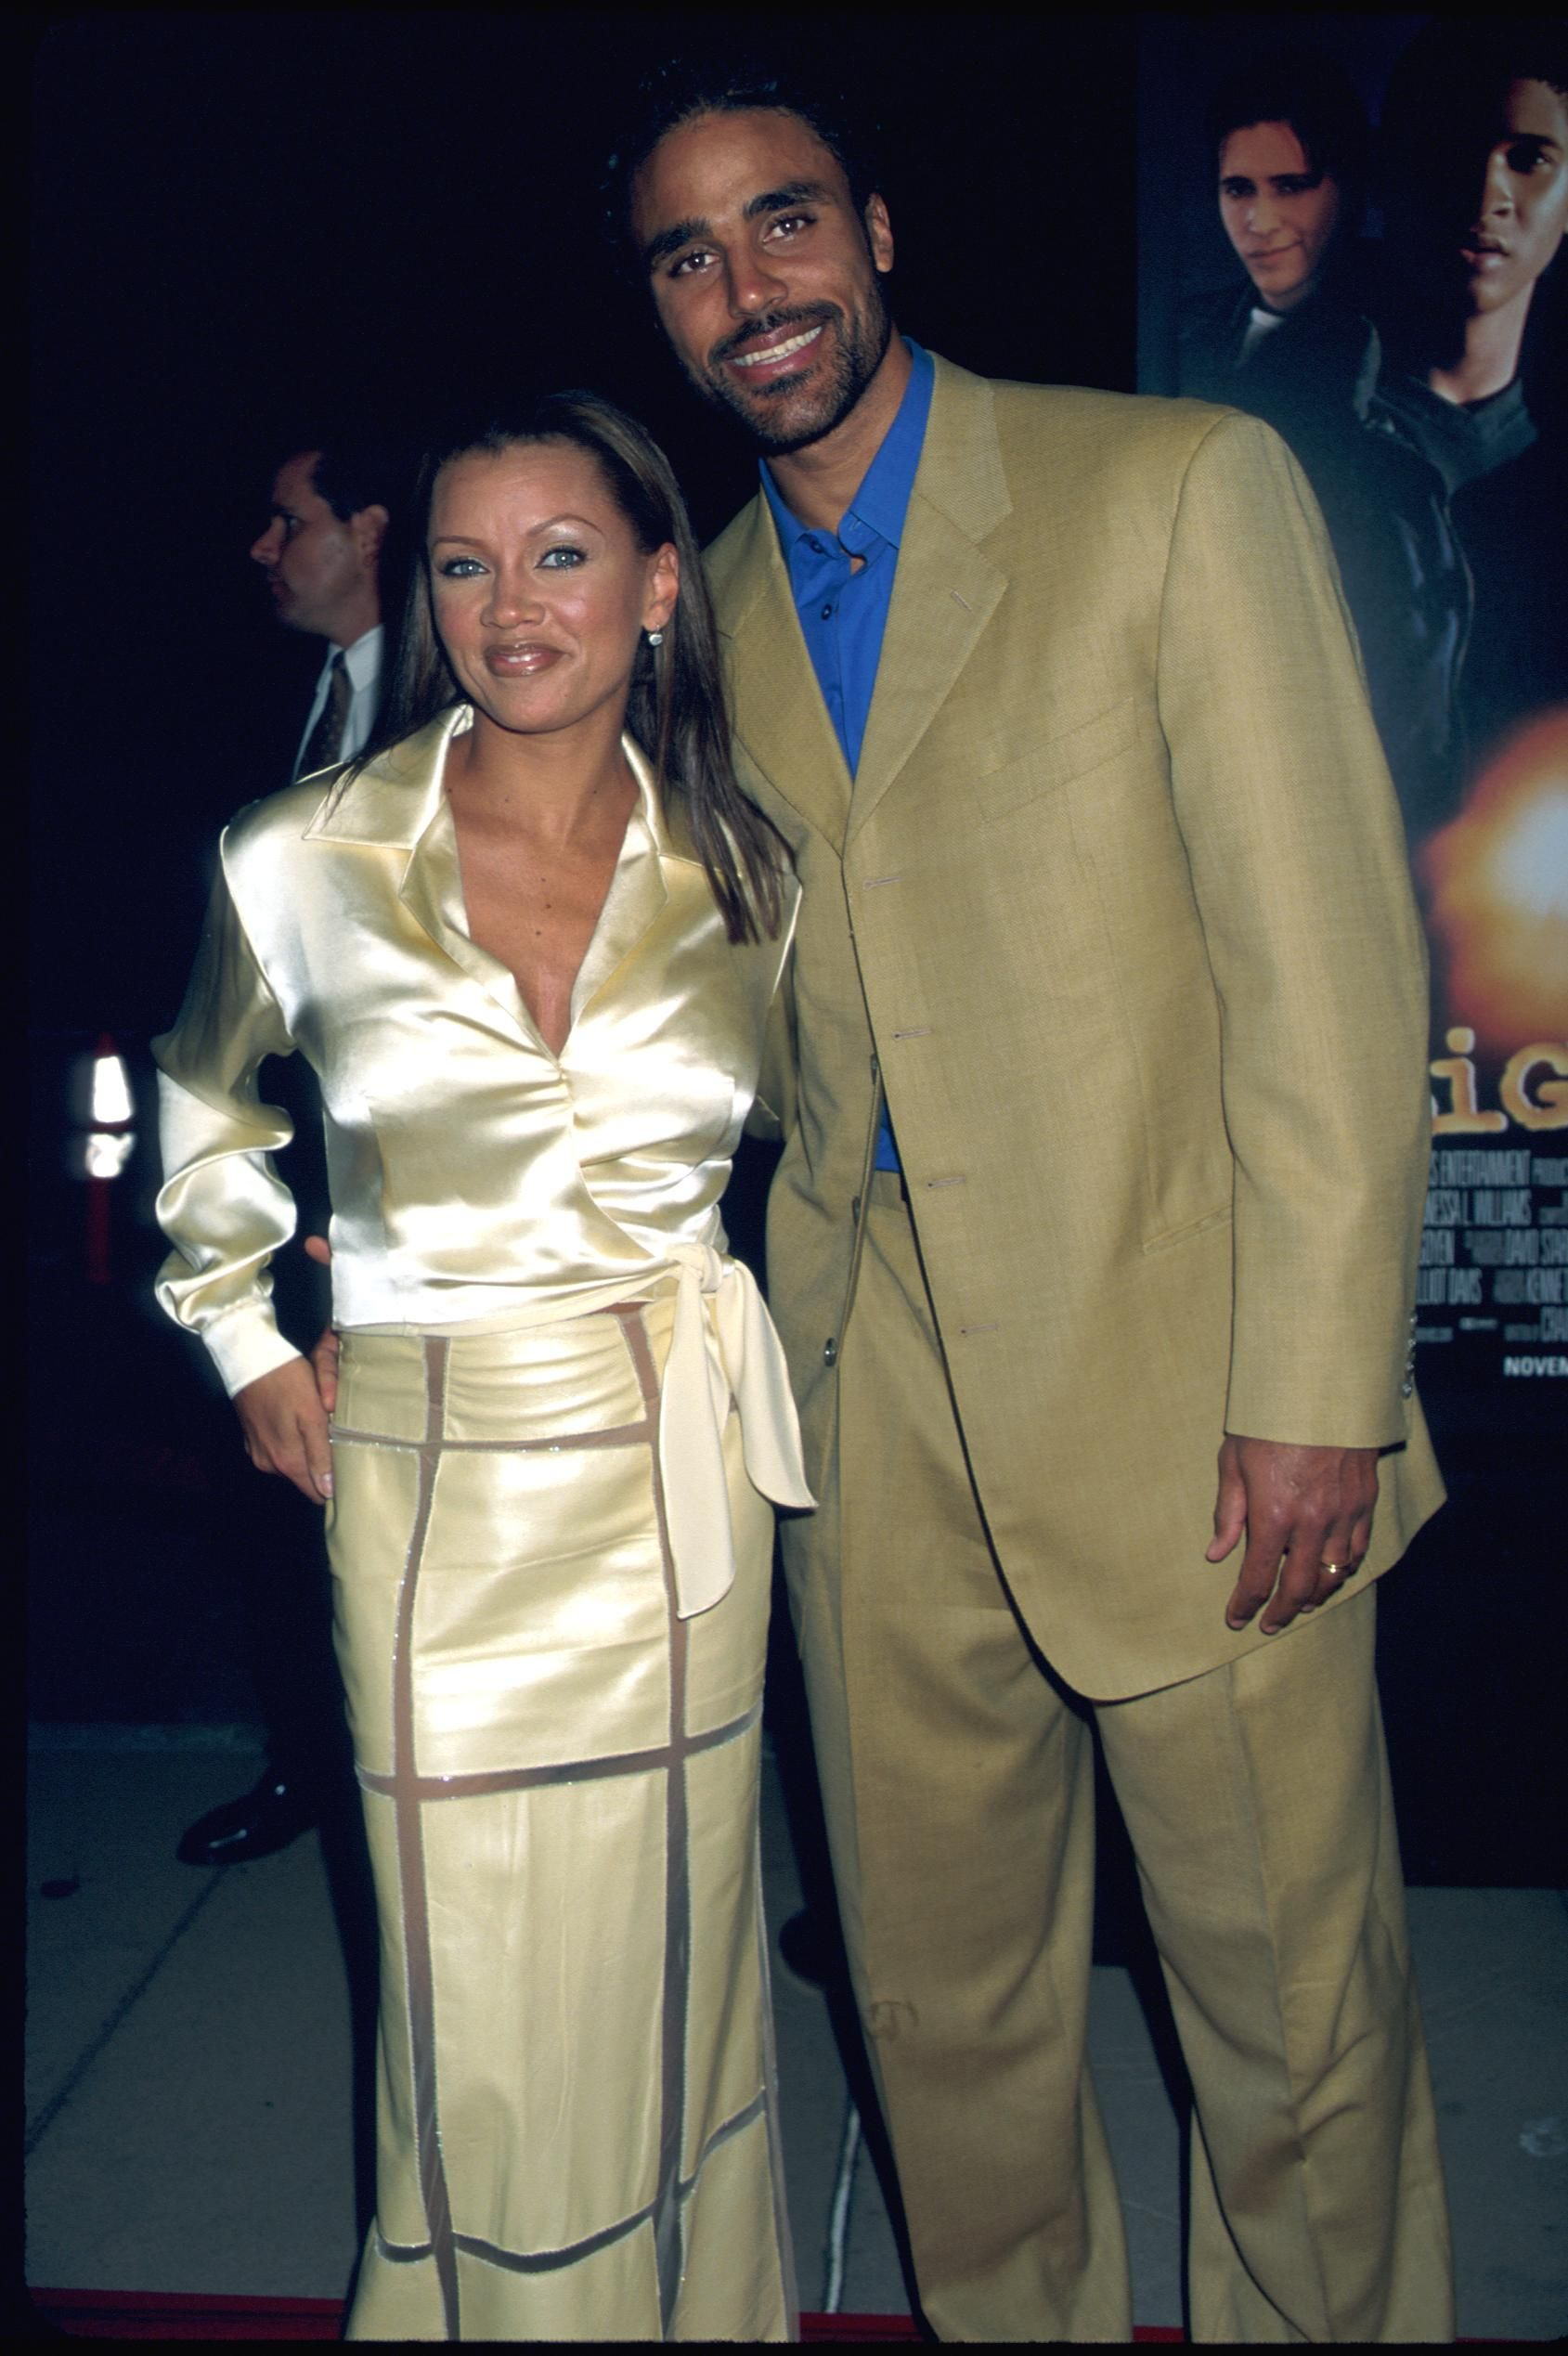 """Vanessa Williams and her ex-husband Rick Fox at the film premiere of her movie, """"Light It Up"""" in 1999. 